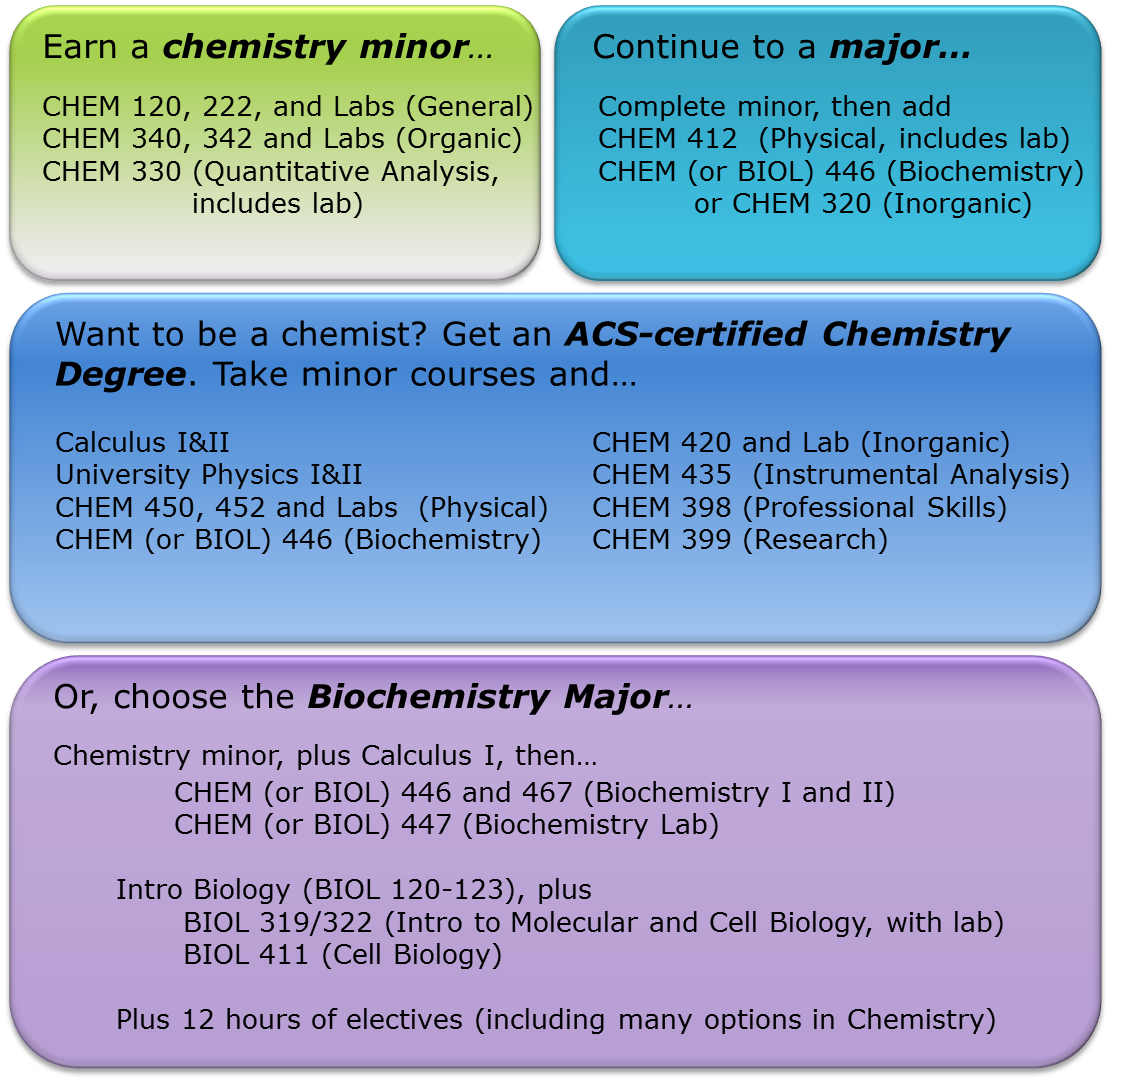 Summary of options for chemistry majors and minors